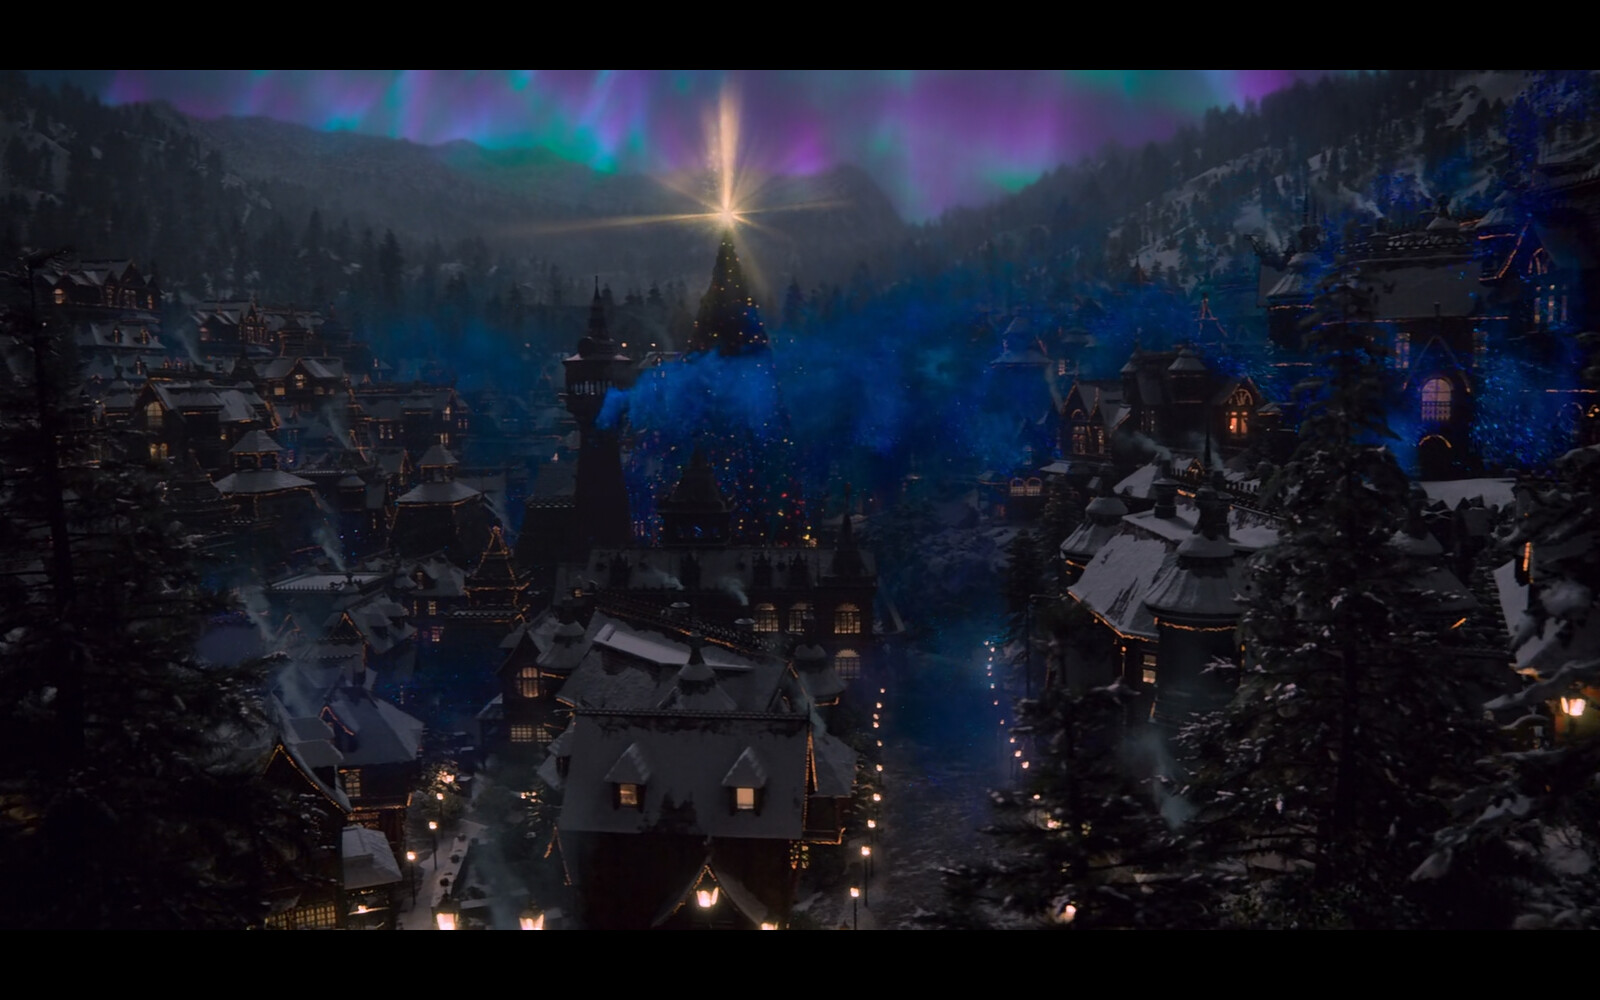 The Santa village shots by night play well with the Aurora in the background and all the lights in the houses and streets.